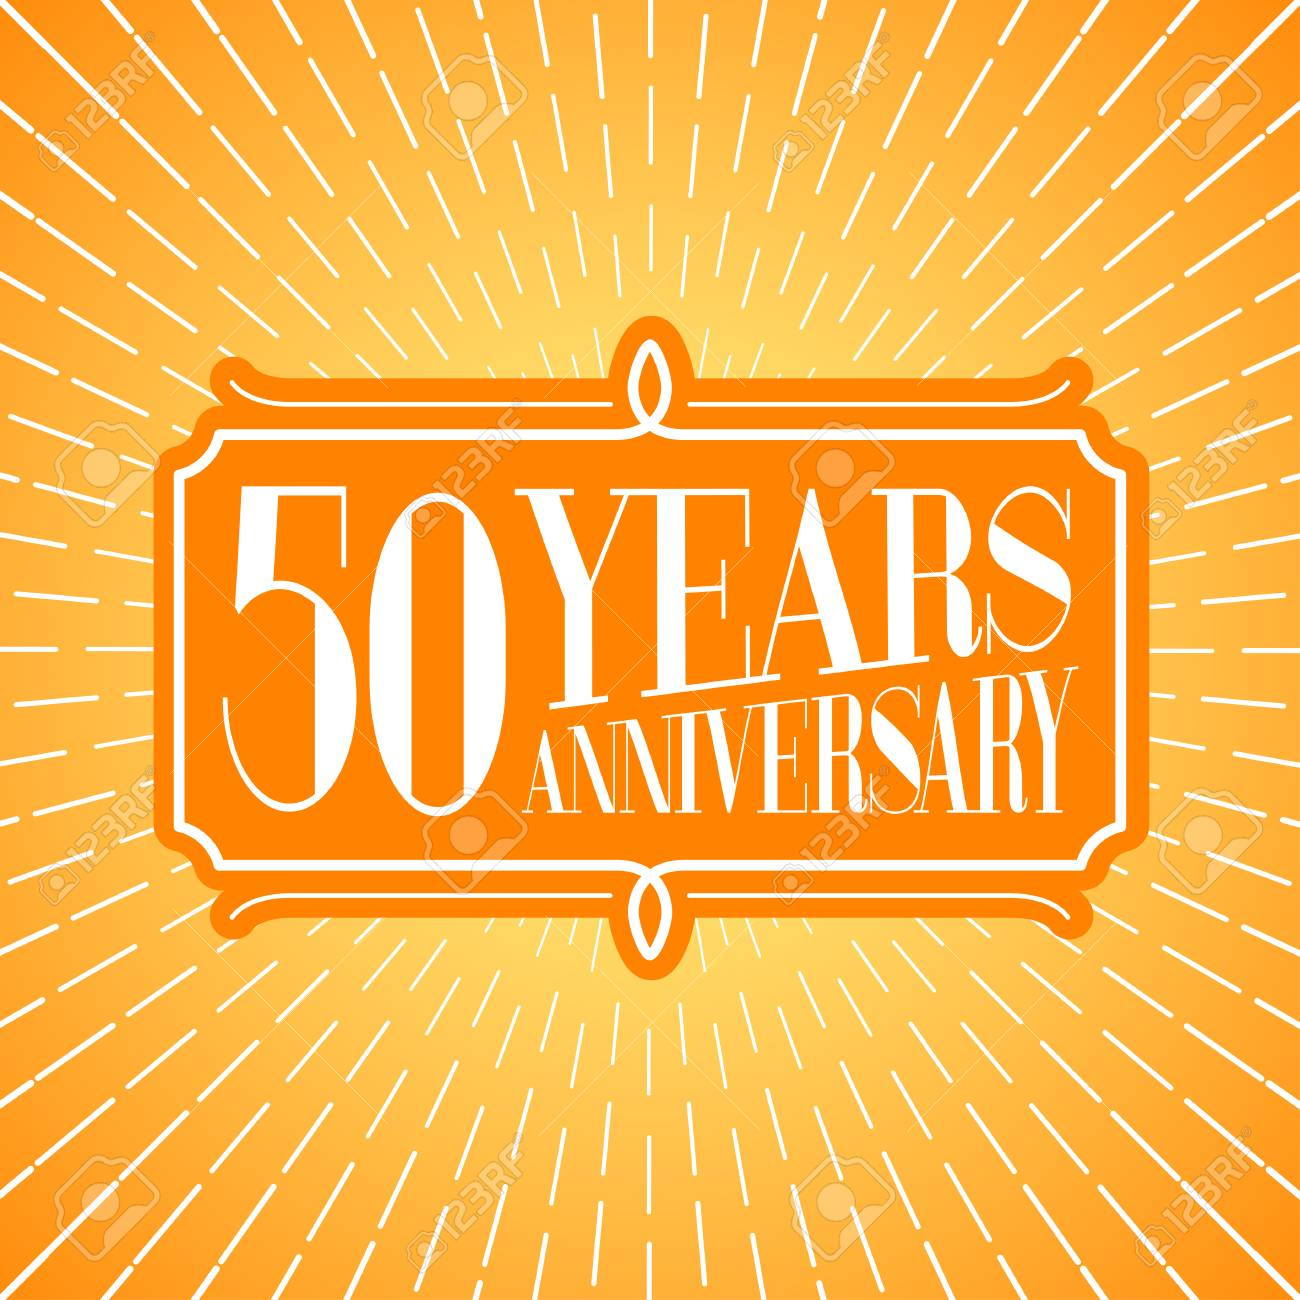 50 Years Anniversary Vector Icon Logo Graphic Design Element For 50th Birthday Greeting